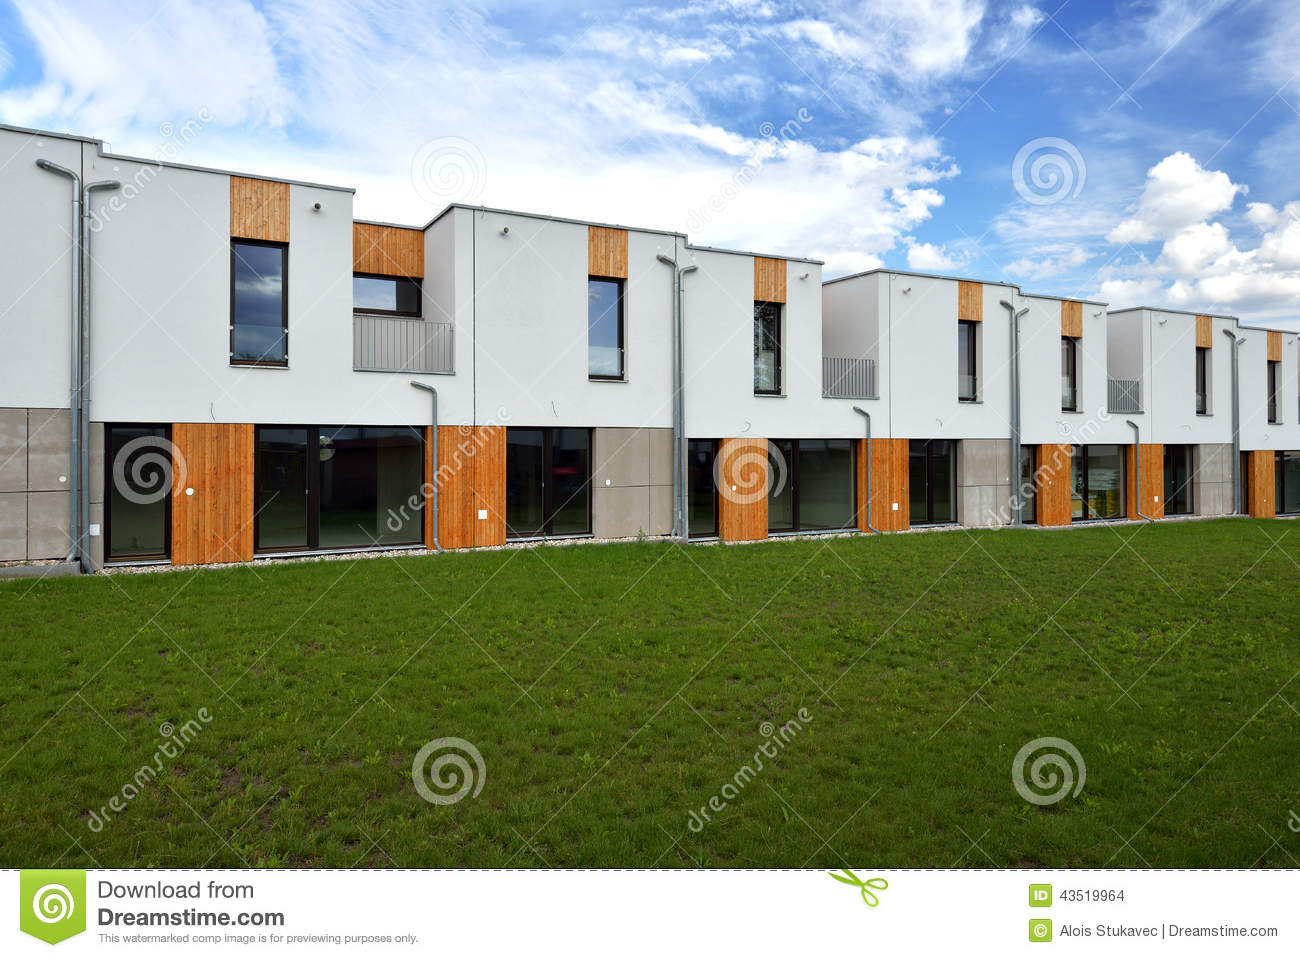 Just built modern family row houses stock photo image - Architettura case moderne idee ...